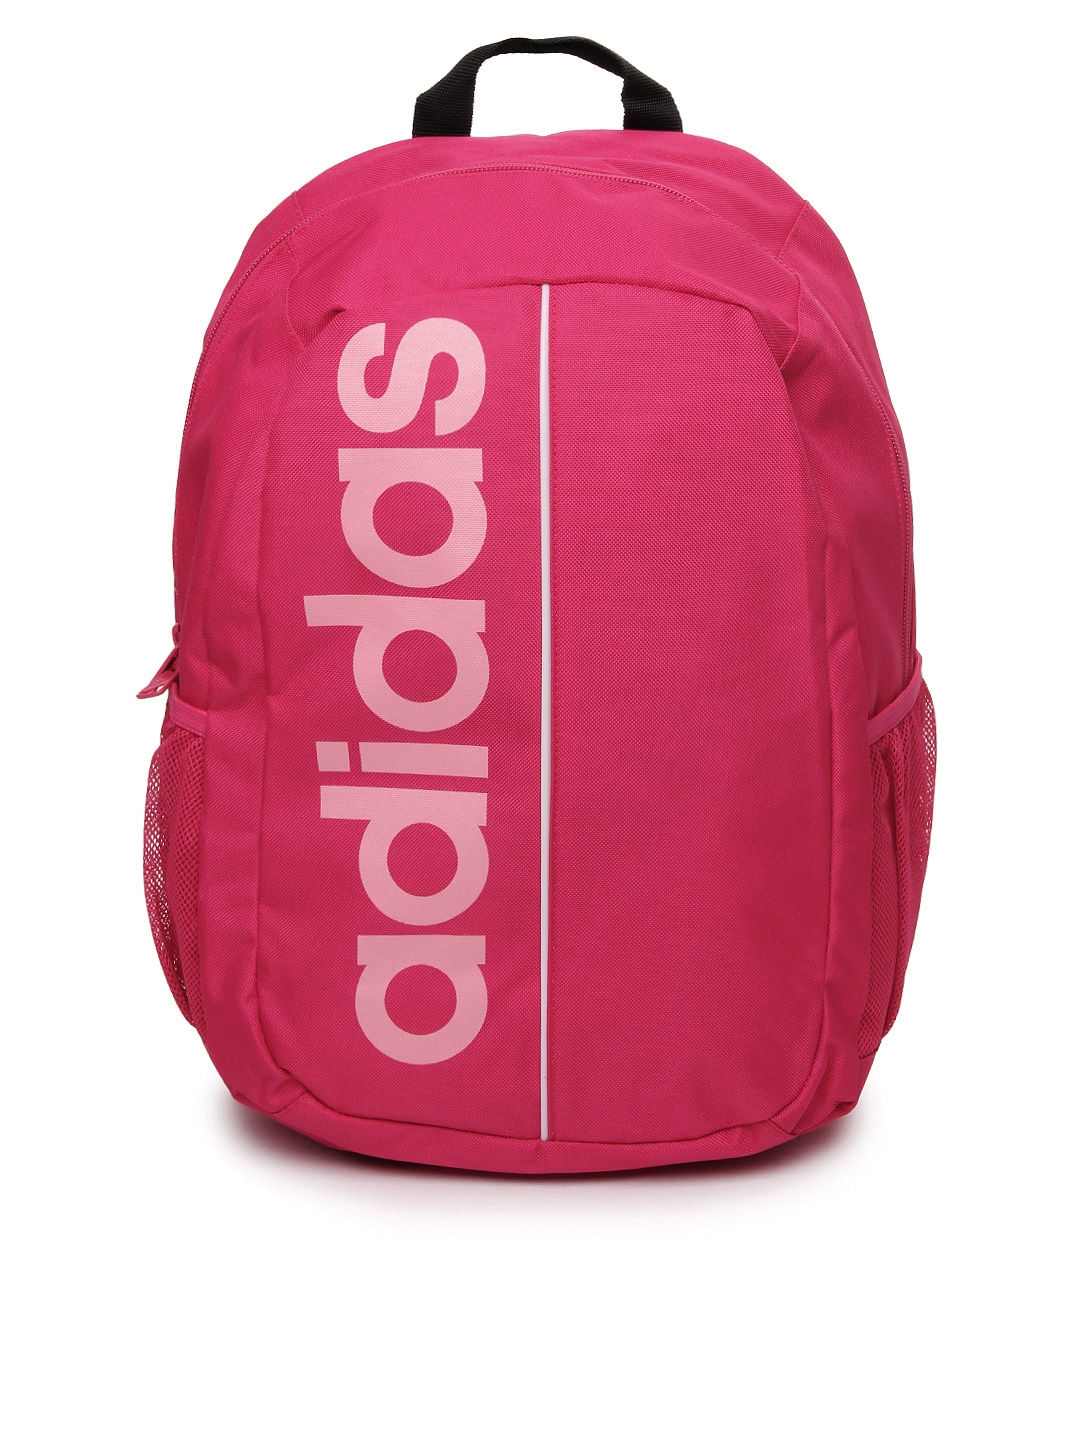 buy adidas girls pink backpack 597 accessories for